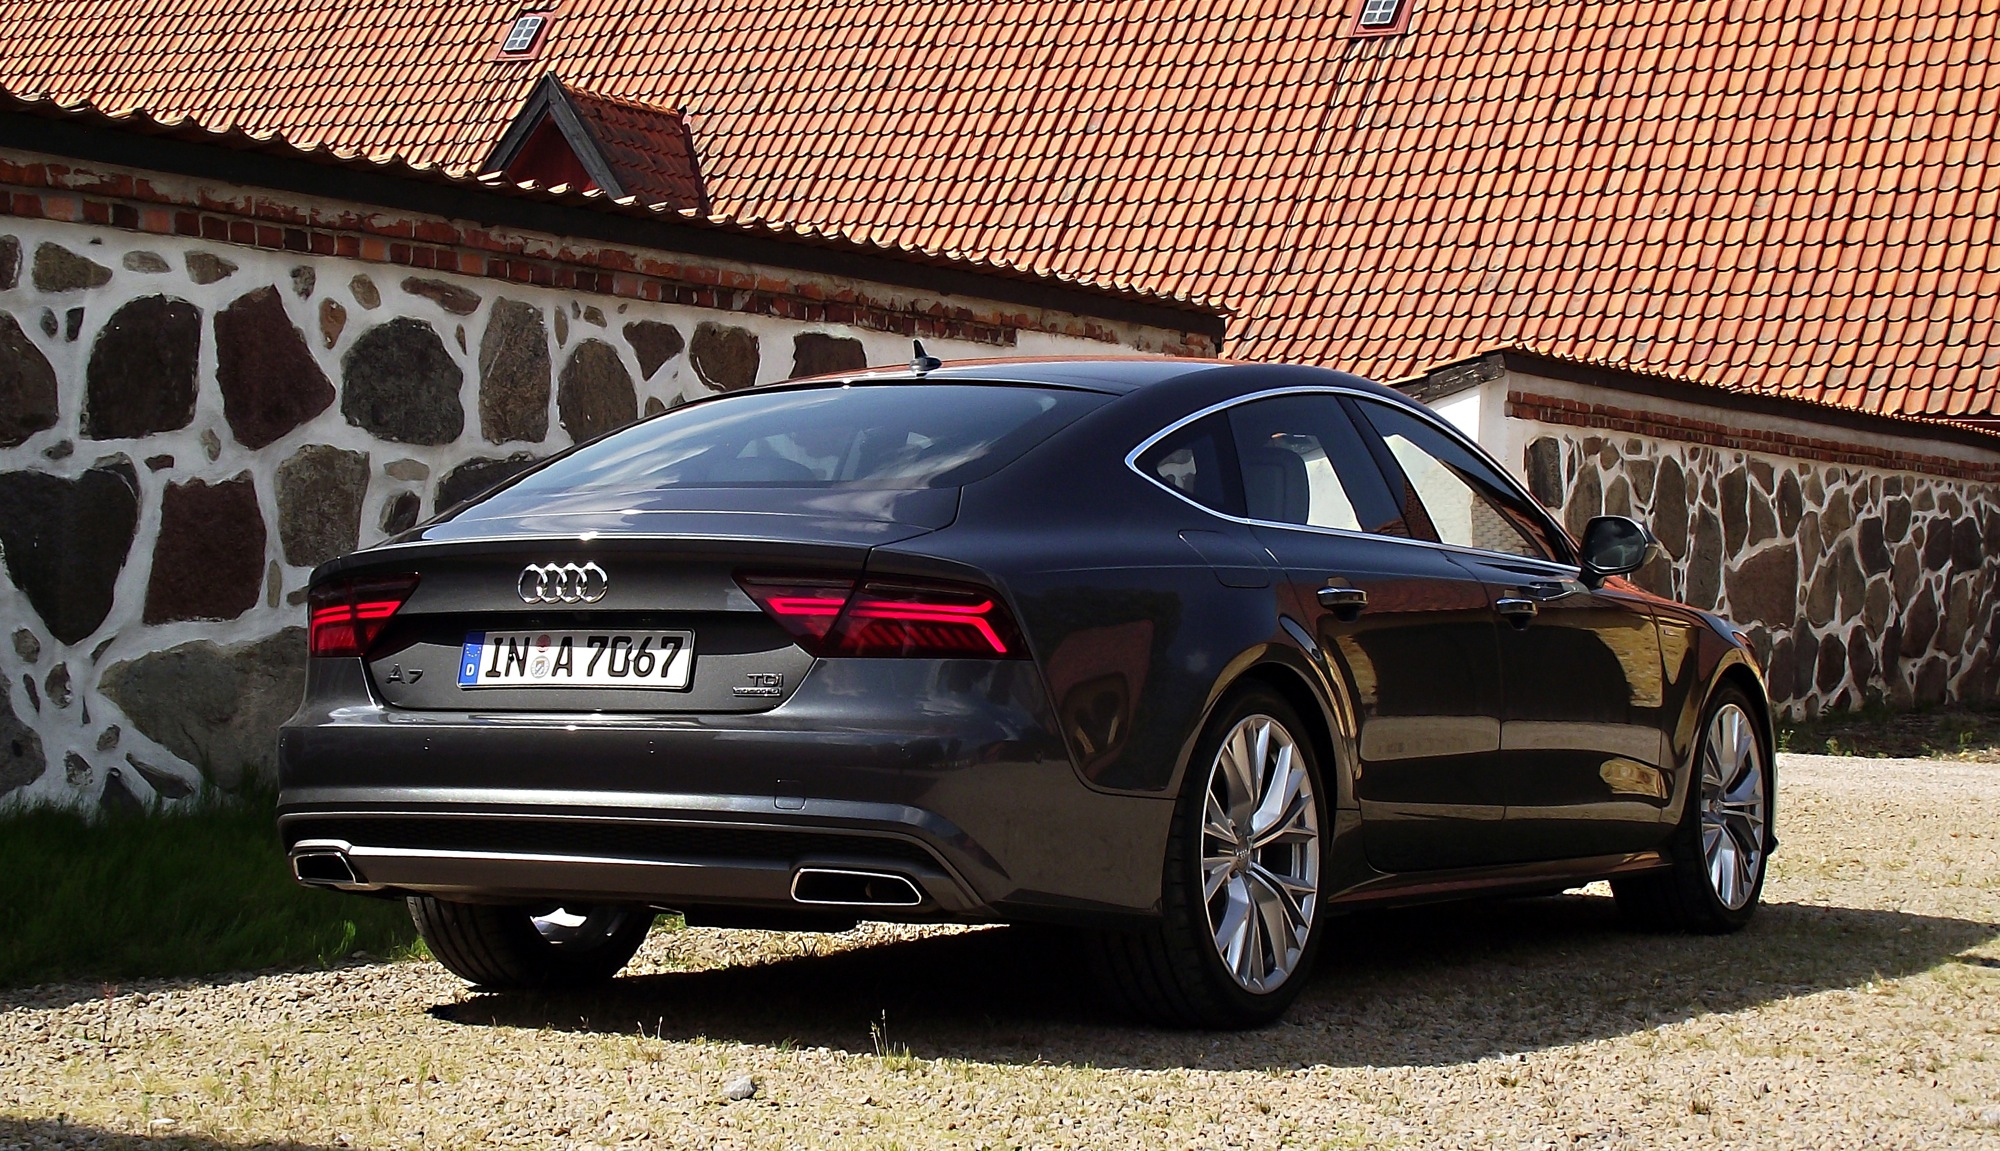 2013 audi a7 sportback 4g pictures information and specs auto. Black Bedroom Furniture Sets. Home Design Ideas